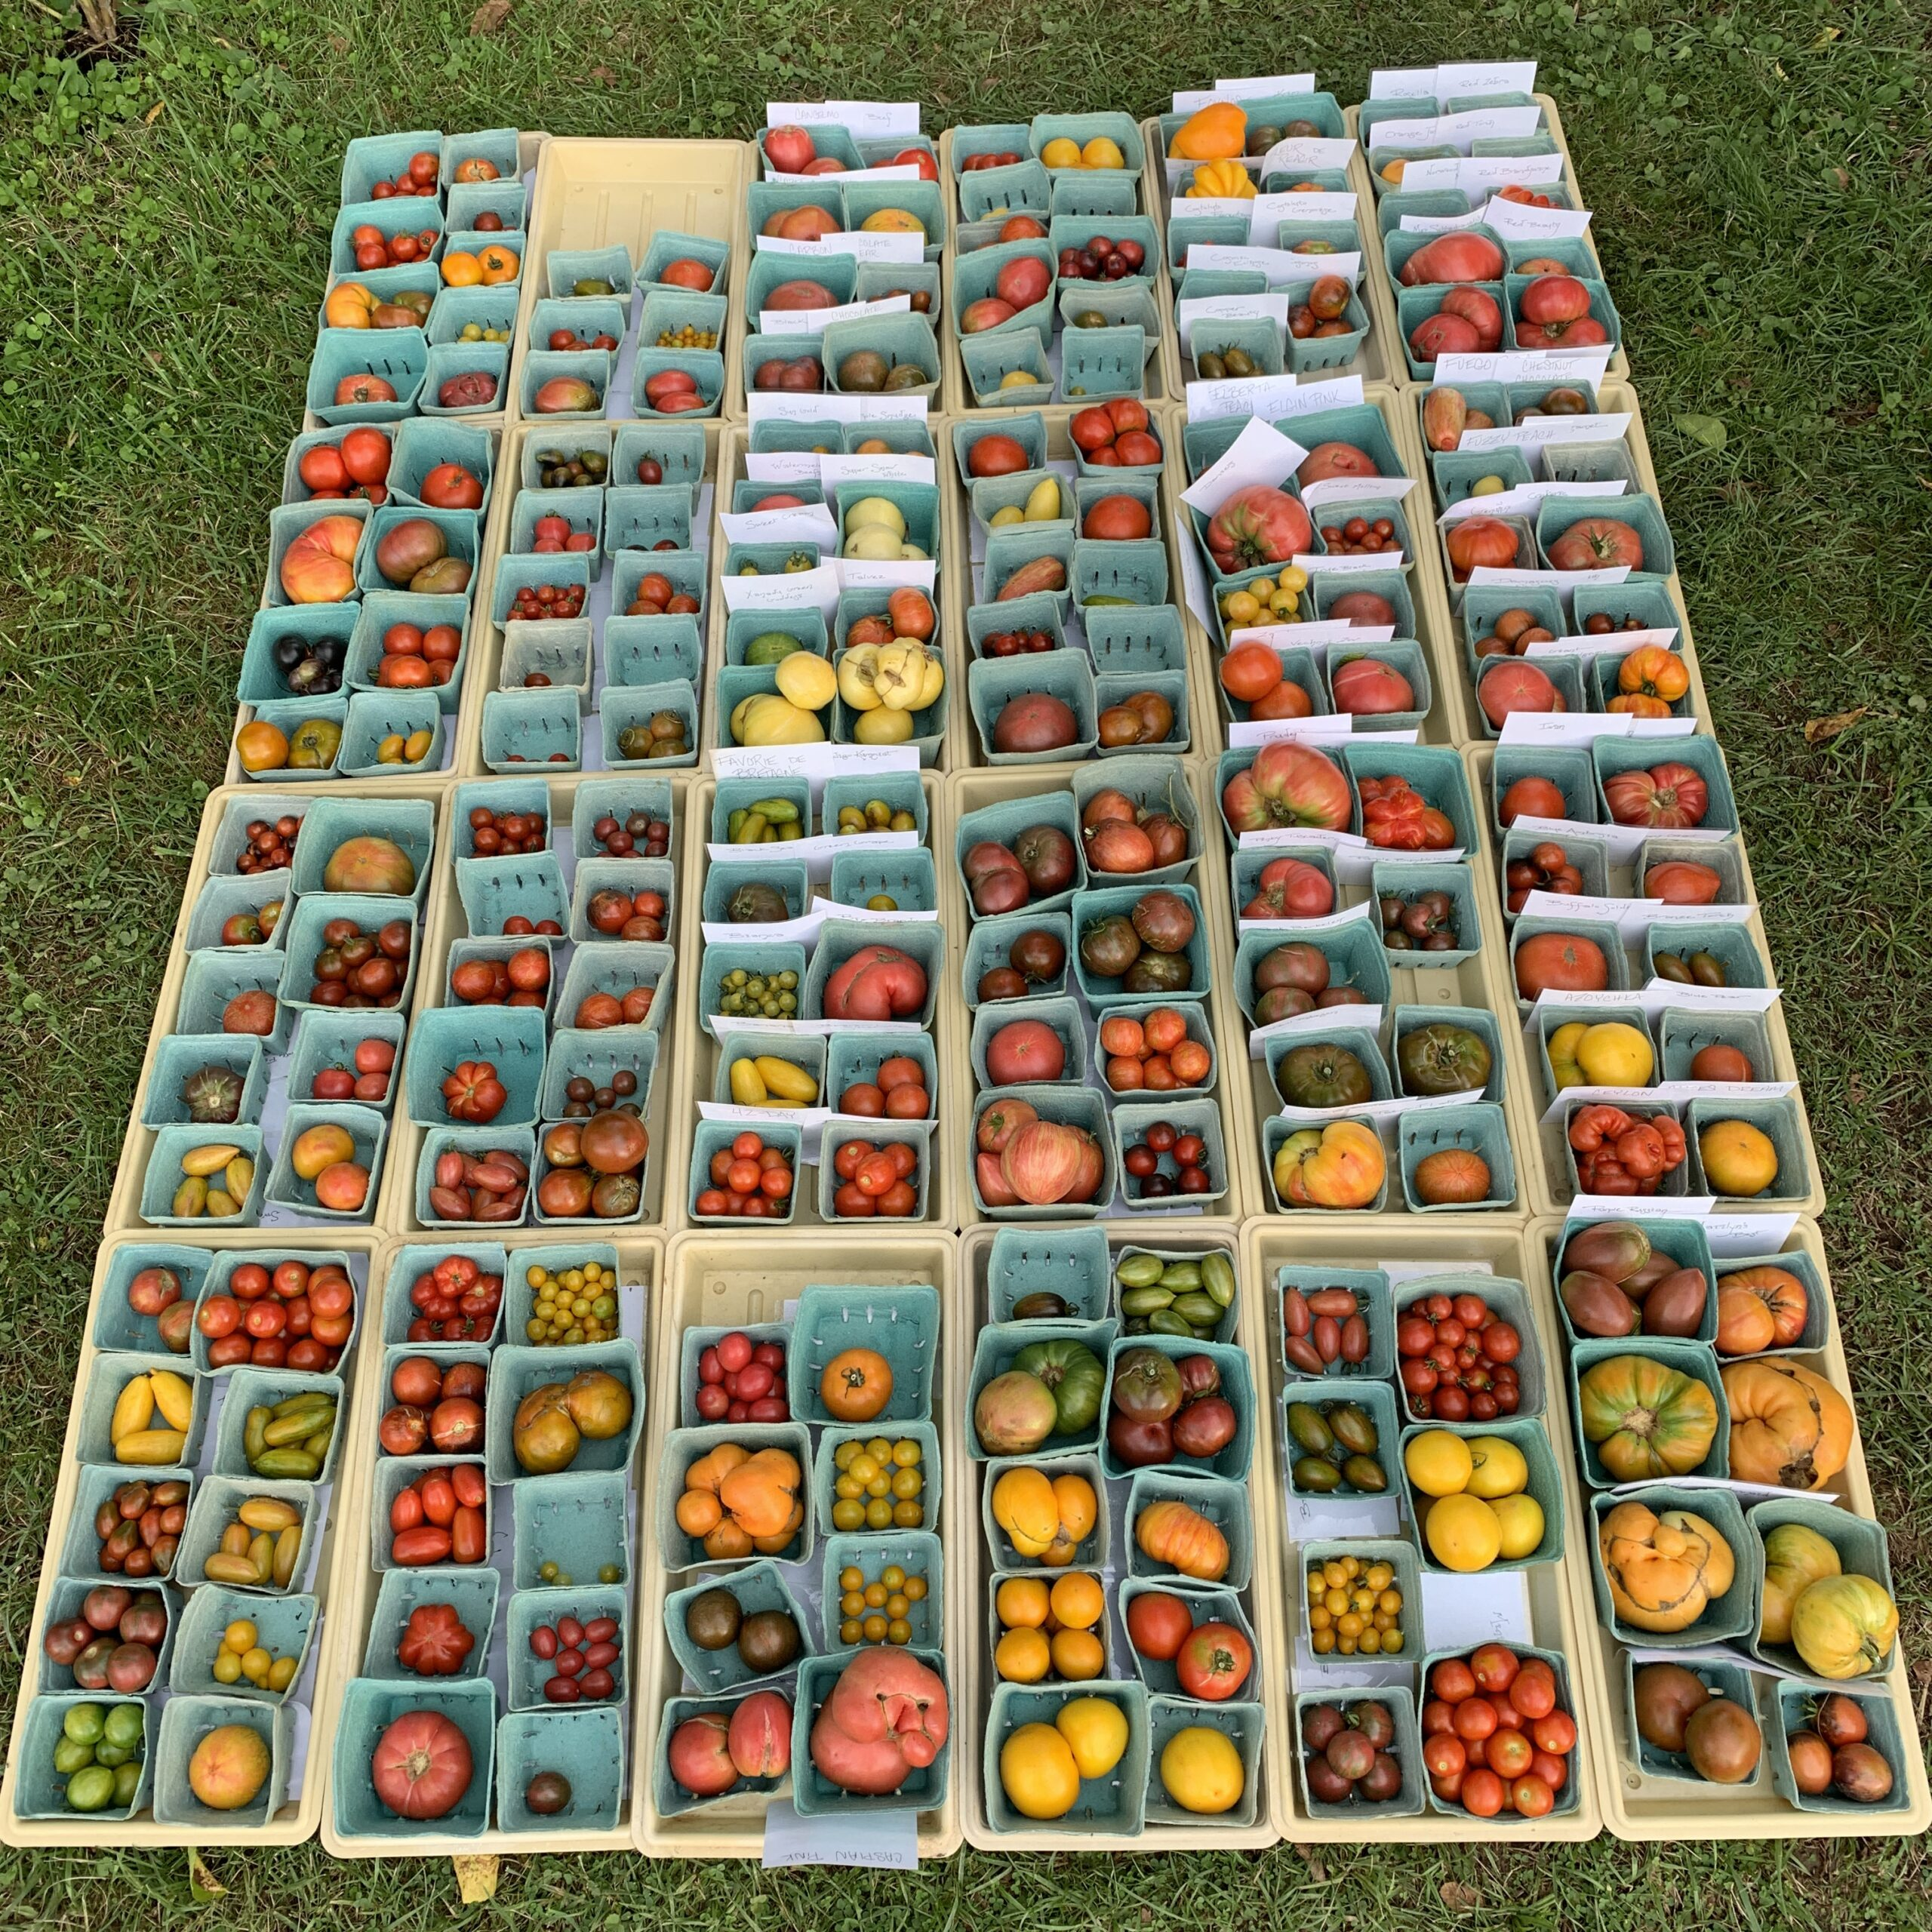 Image of a day's tomato harvest, about 200 kinds.